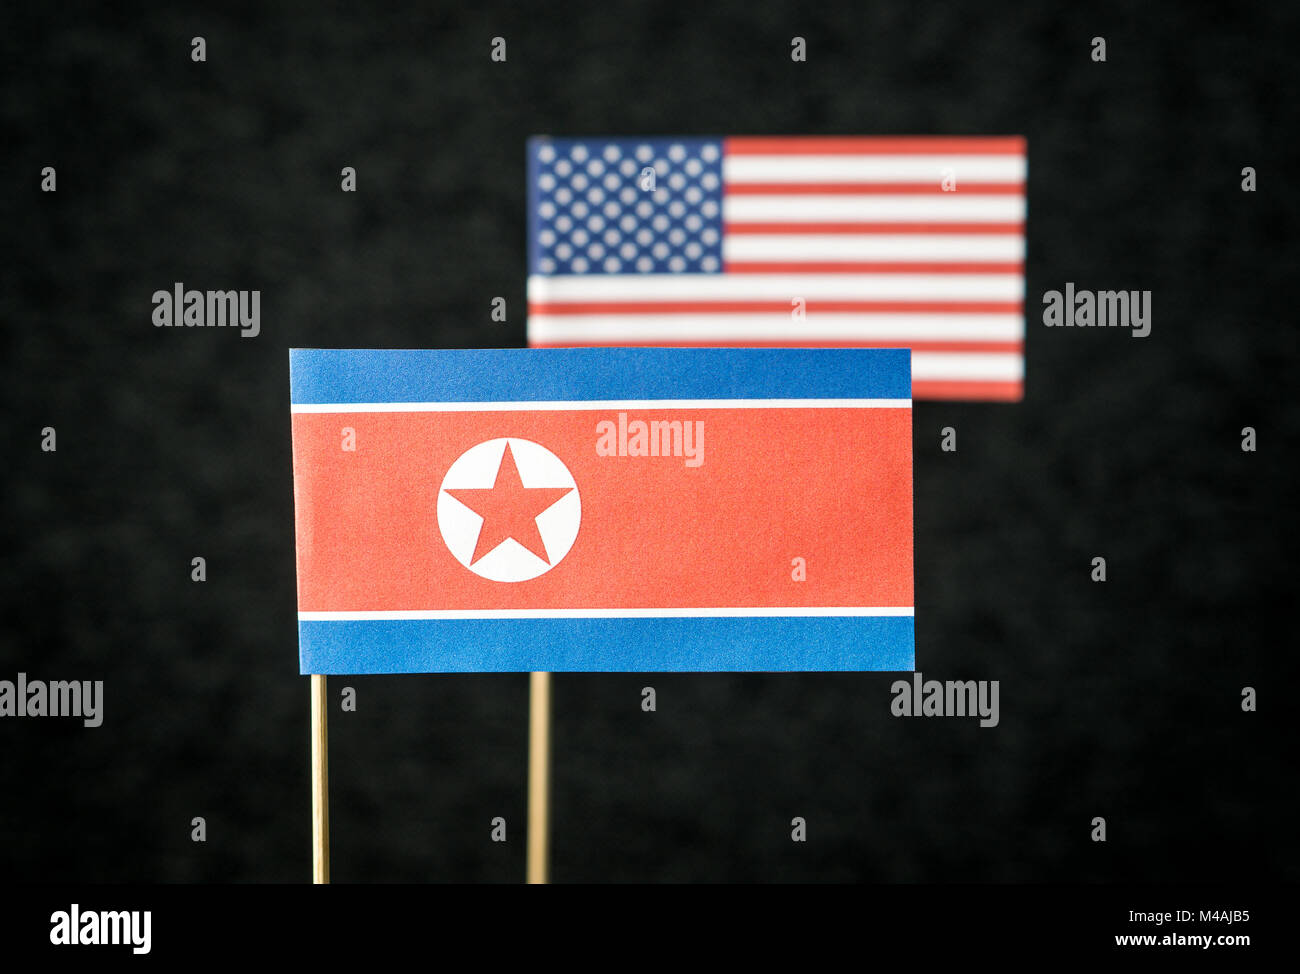 The flag of North Korea and United States of America (USA) made from paper on wooden stick against dark background. - Stock Image